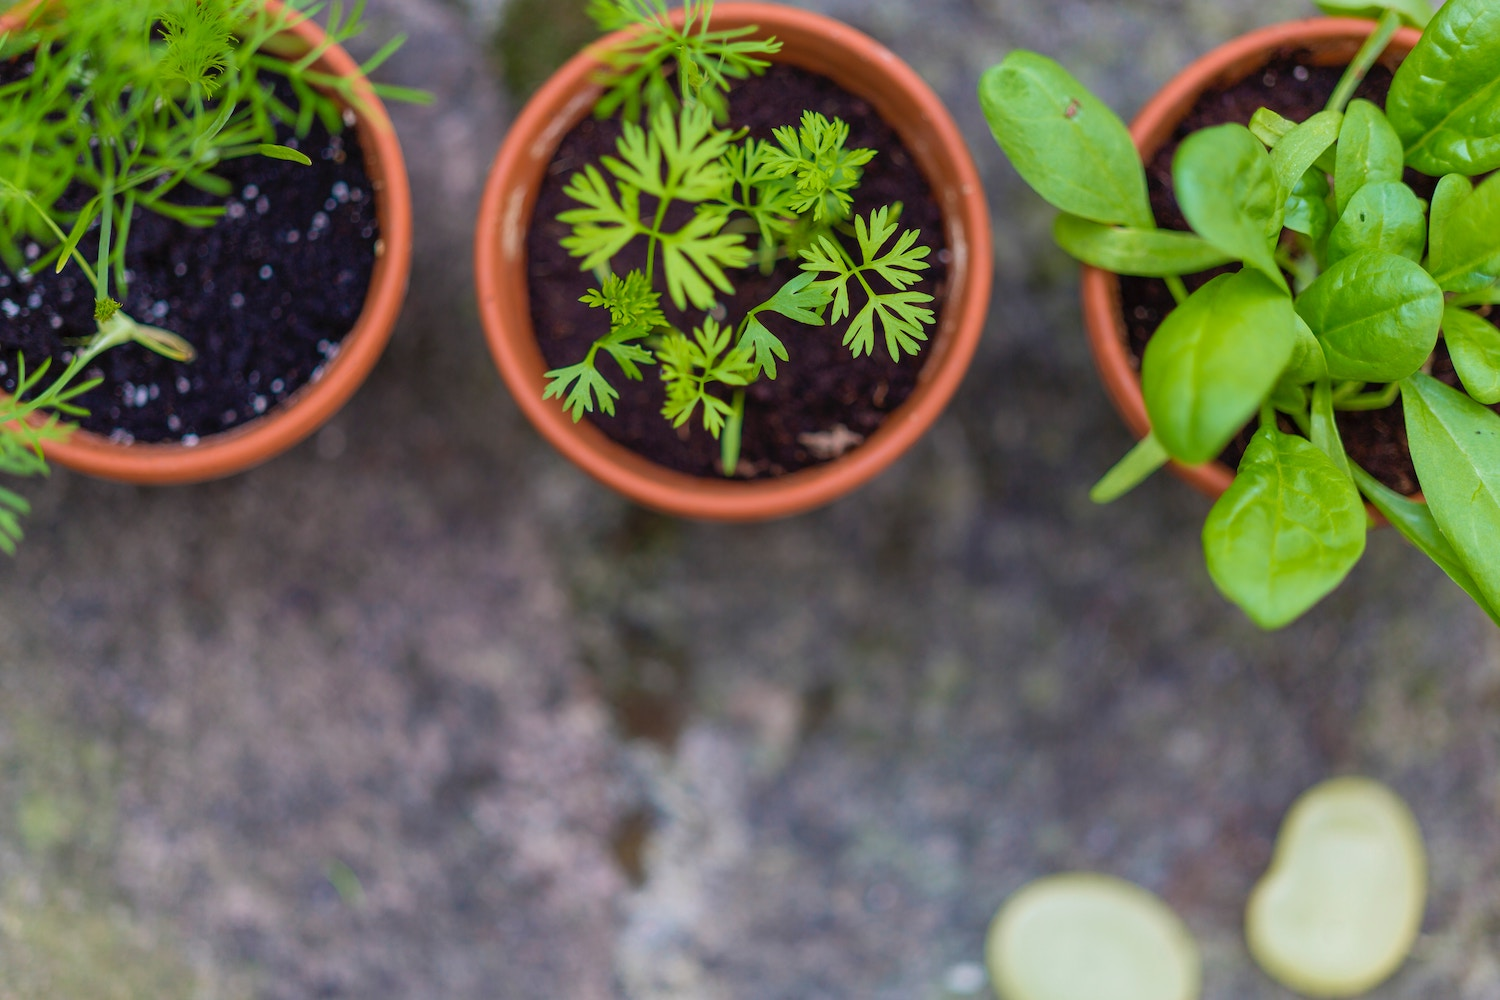 How To Grow Culinary Herbs Indoors During The Winter   Herbal Academy   Would you like a way to grow herbs that you can enjoy all winter long? Here's a step-by-step guide to help you grow culinary herbs indoors!